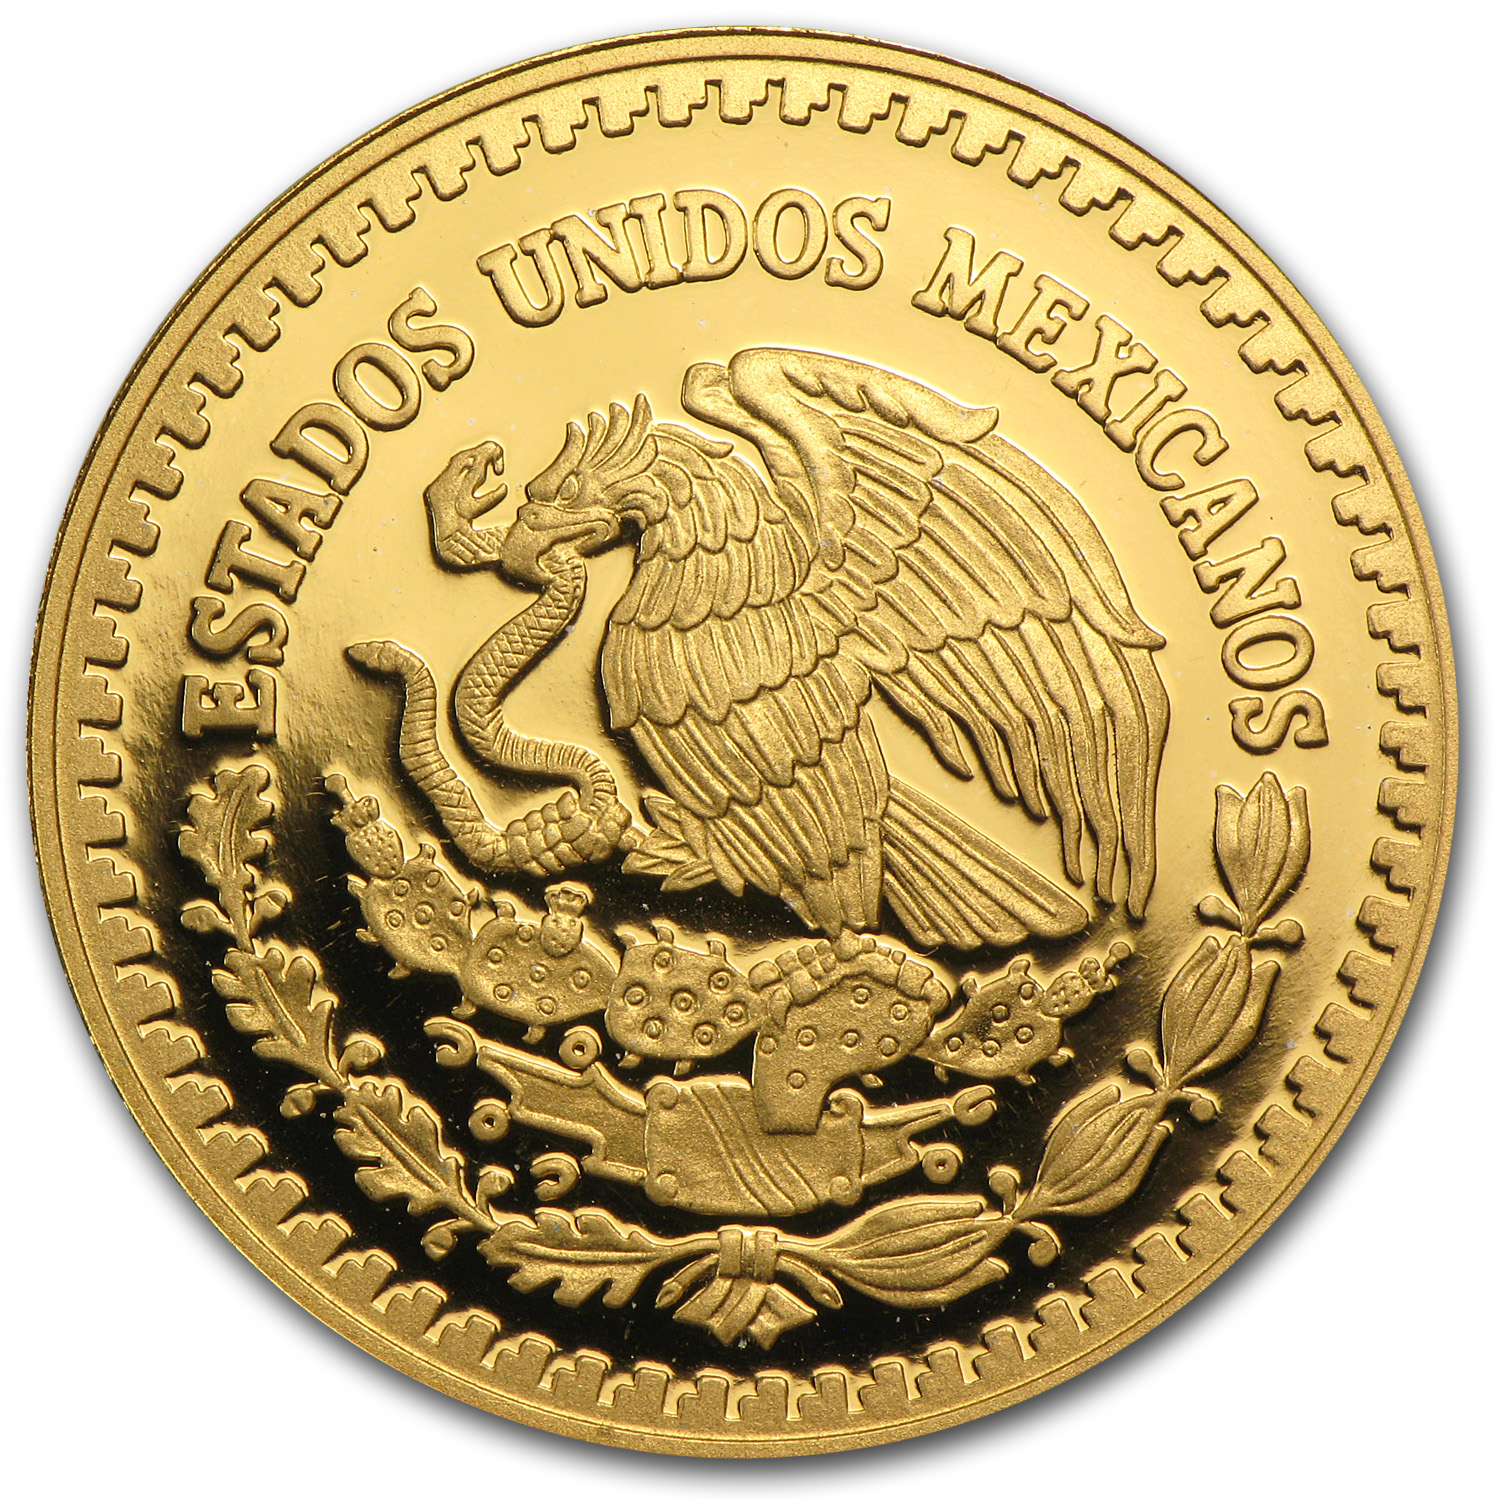 2006 1/2 oz Gold Mexican Libertad - Proof